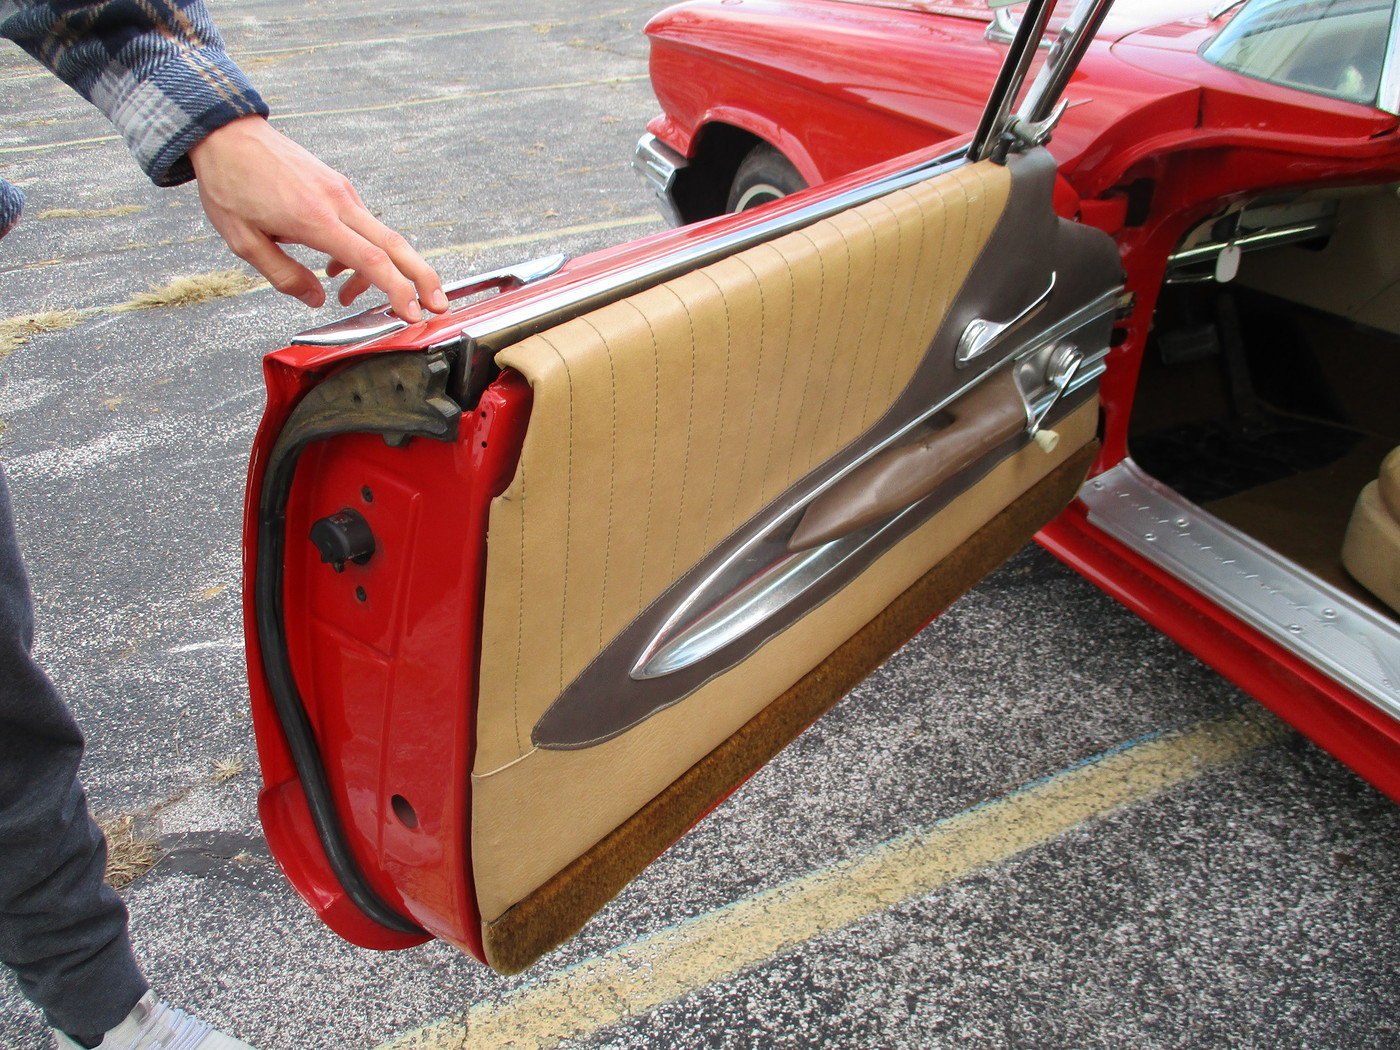 1960 Ford Thunderbird Convertible For Sale (picture 5 of 12)